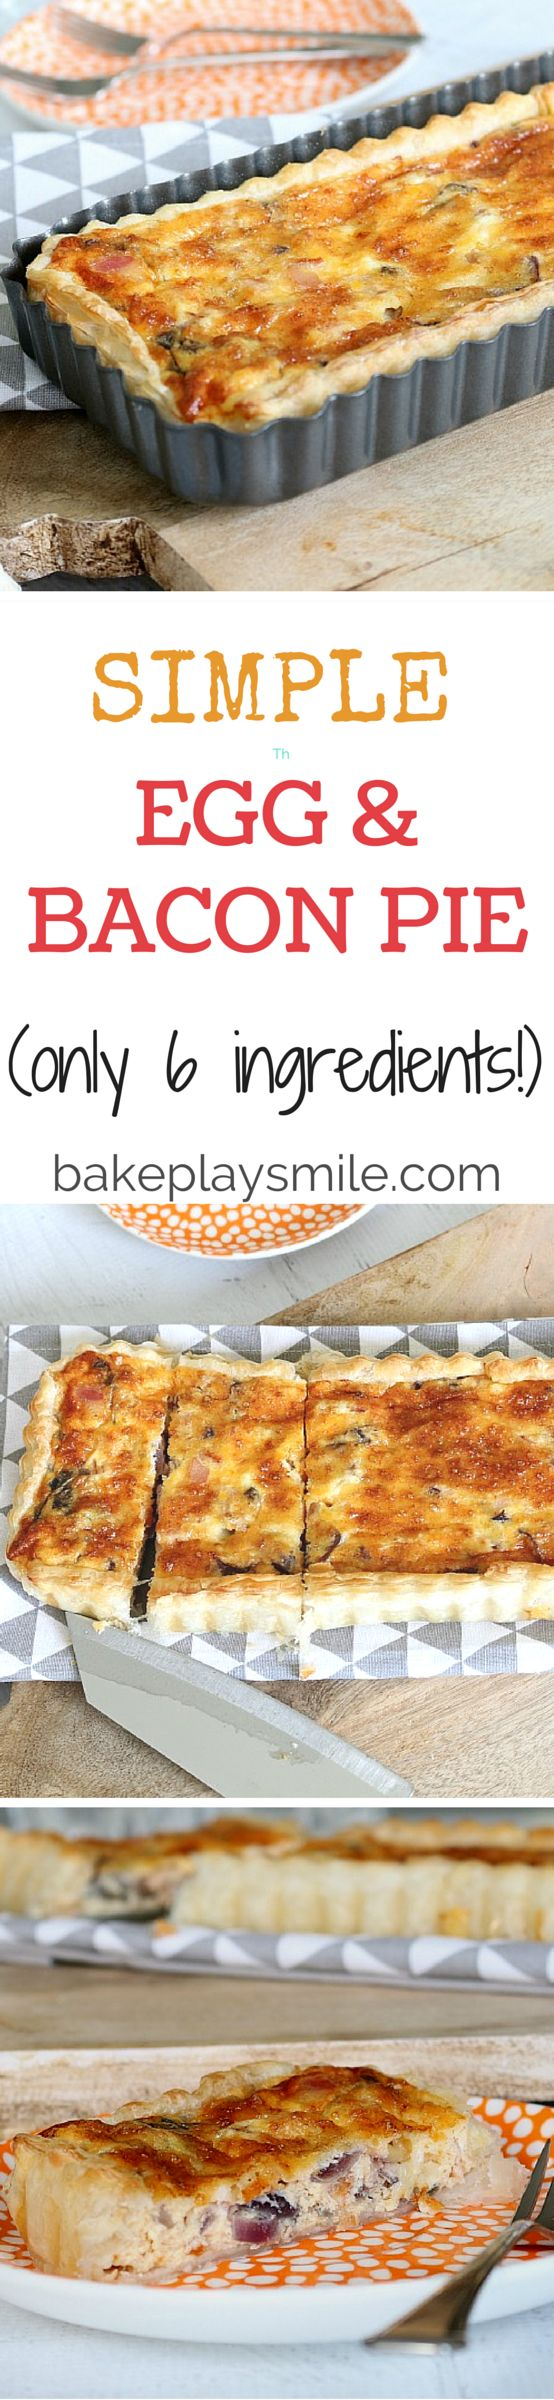 This is by far the easiest and yummiest egg and bacon pie you'll ever make. Pre-made puff pastry gives you a perfectly crispy crust and it means that you can have this on the table in 30 minutes!! | Bake Play Smile #egg #bacon #pie #tart #easy #quick #recipe